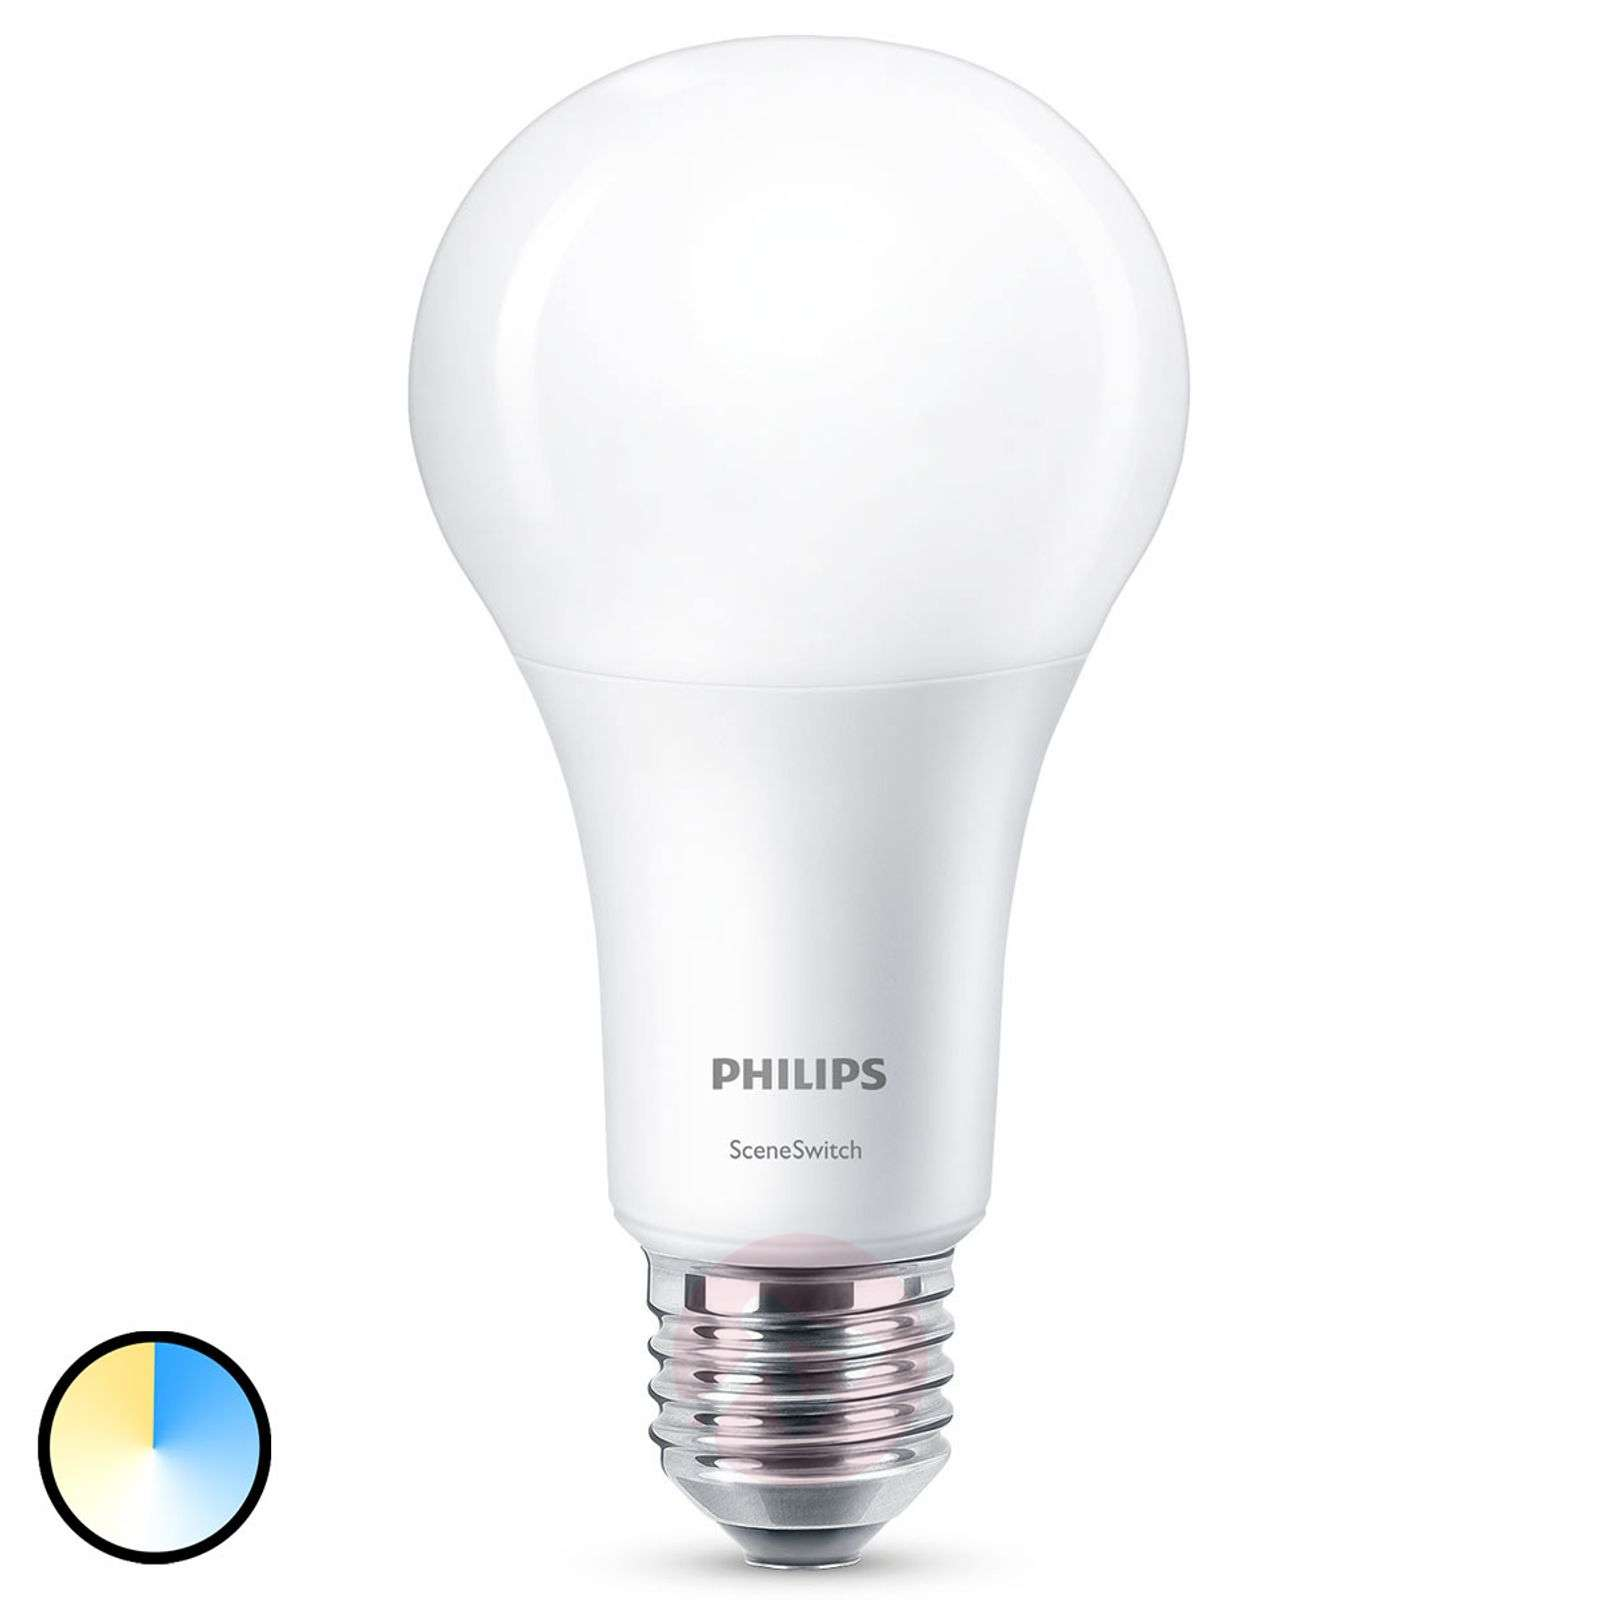 Philips SceneSwitch E27 ampoule LED 14 W mate-7530831-01